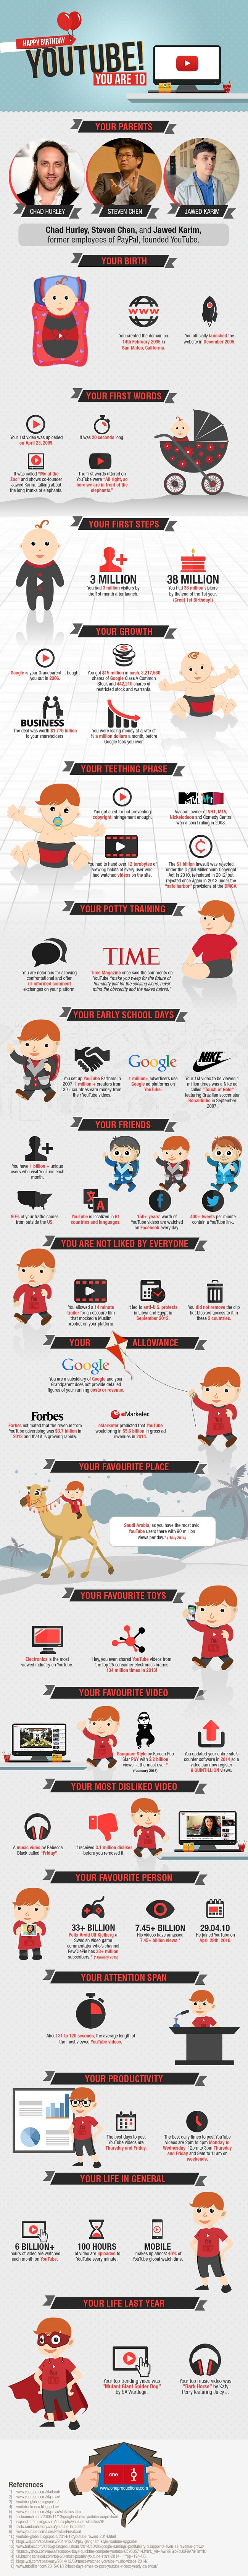 YouTube 10 infographic